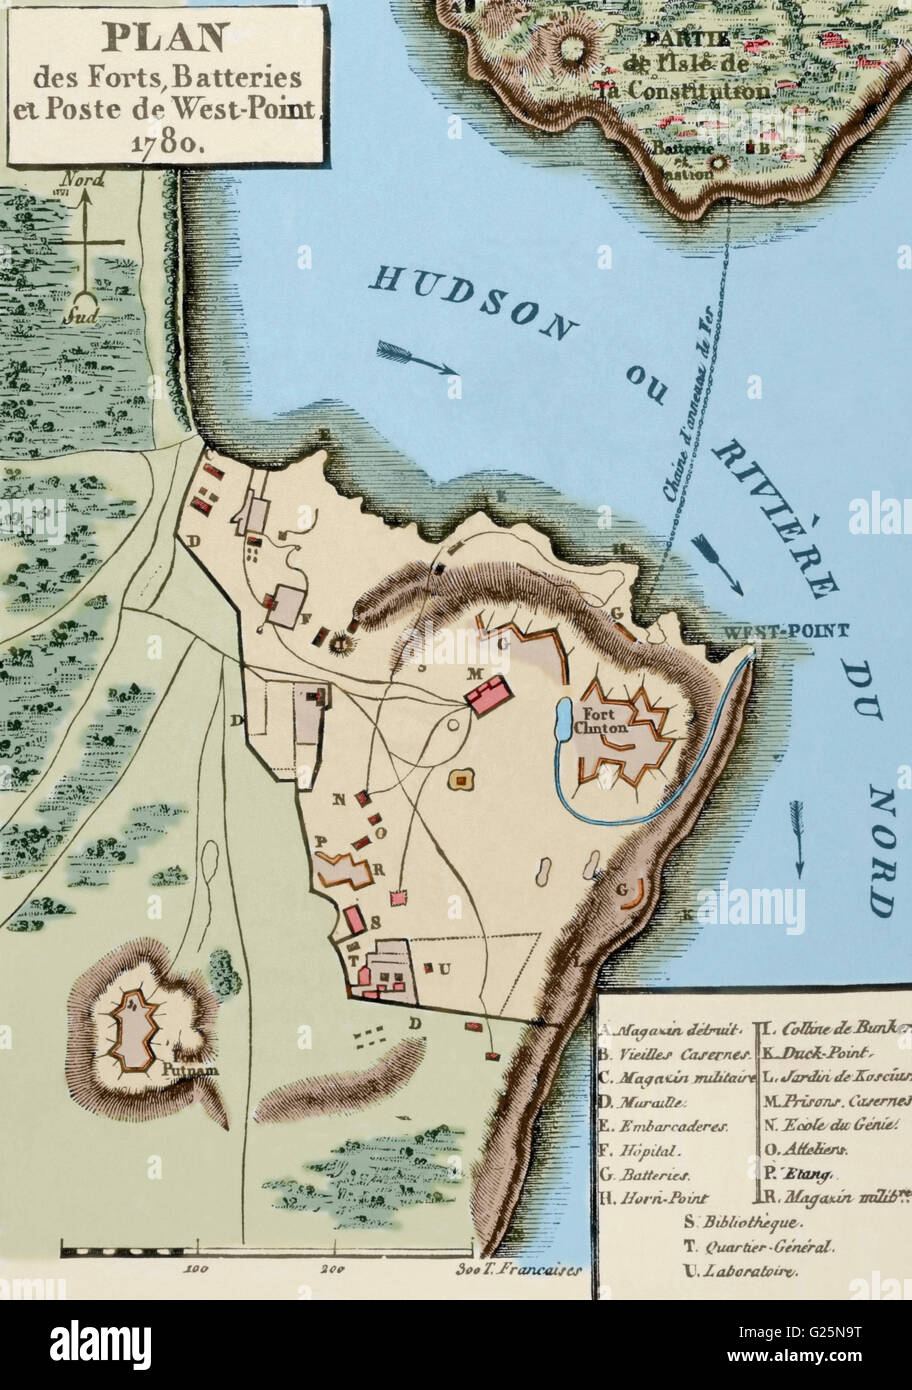 American Revolutionary War  1775 1783   Map of the defense network     American Revolutionary War  1775 1783   Map of the defense network at West  Point  including the Great Chain  Constitution Island  Fort Clinton